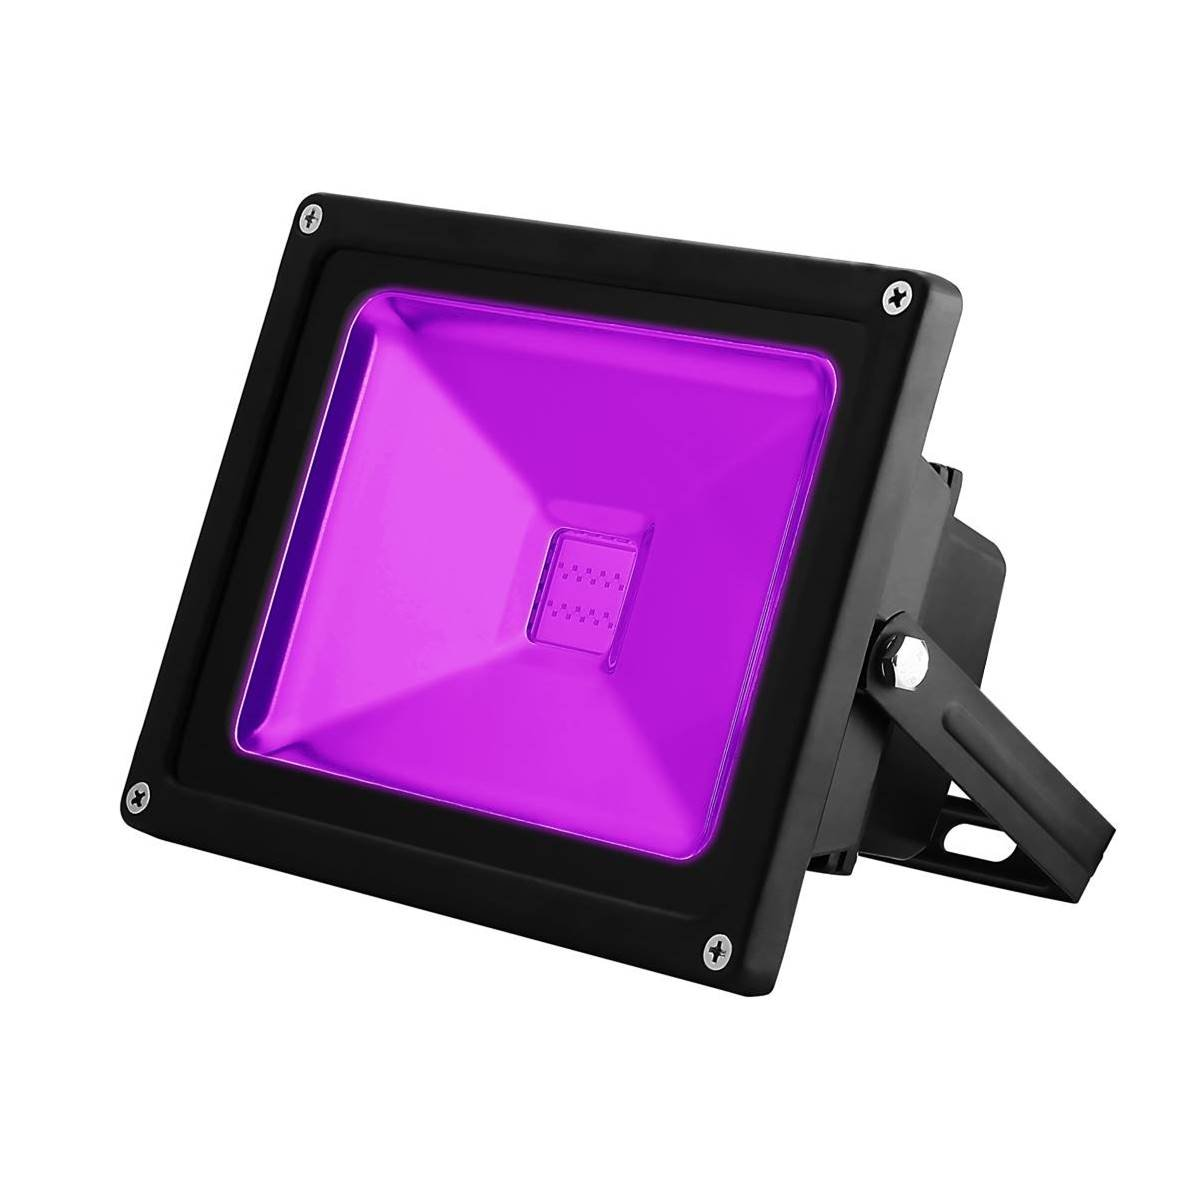 UV LED Black Light, YKDtronics Indoor/Outdoor 20W UV LED Flood Light, Ultra Violet LED Flood Light for Neon Glow, Blacklight Party, Stage Lighting, Fluorescent Effect, Glow in The Dark and Curing